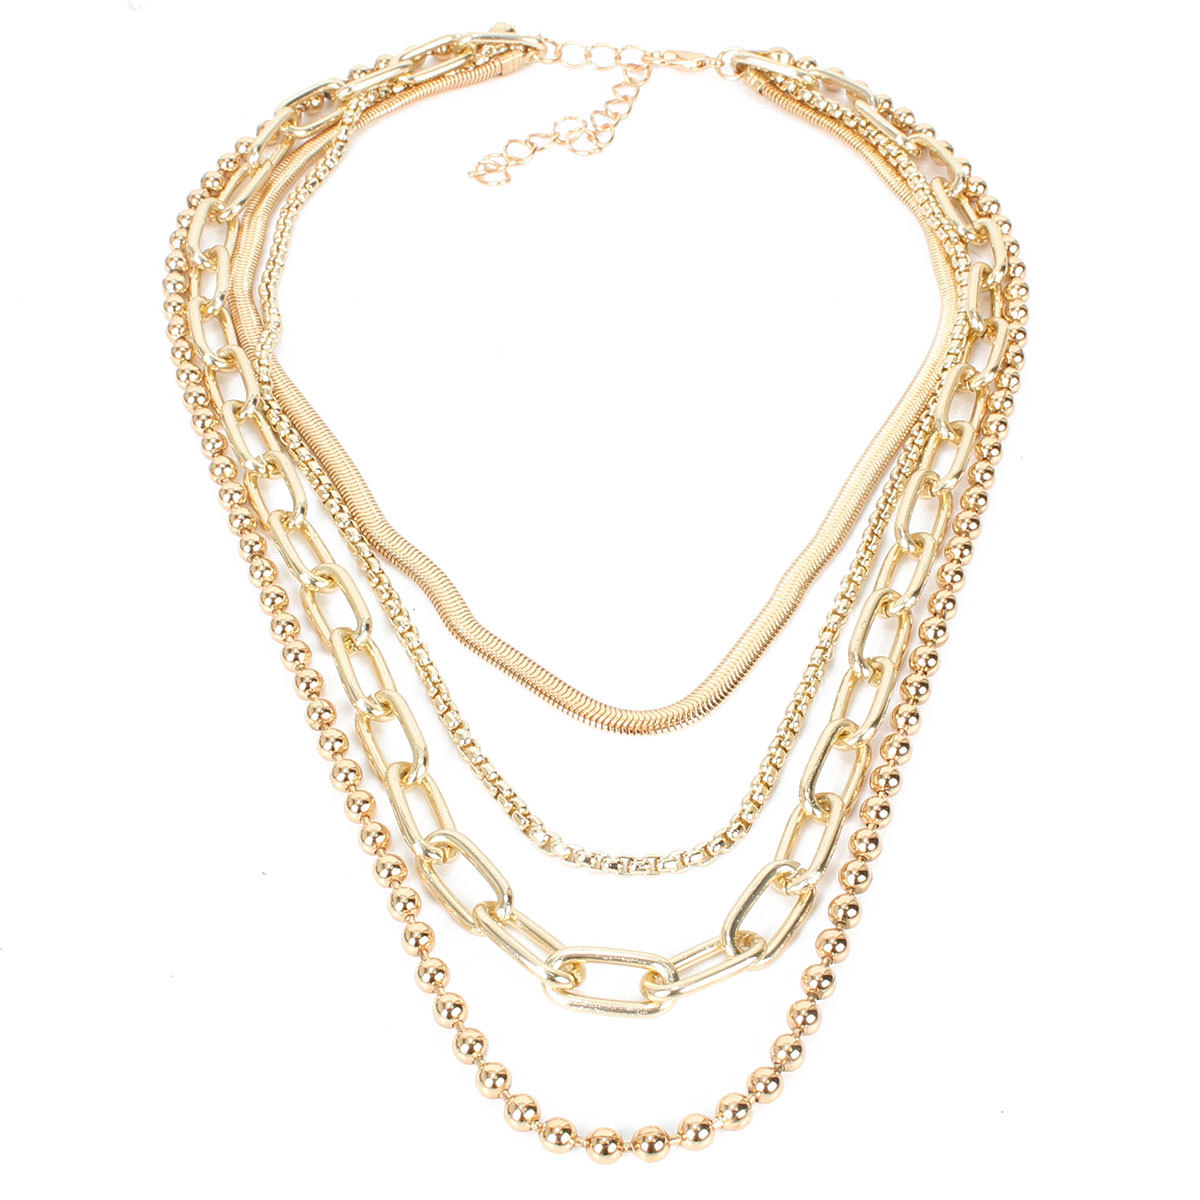 Fashion metal necklace wholesale nihaojewelry multi-layer chain clavicle chain necklace women NHCT218048